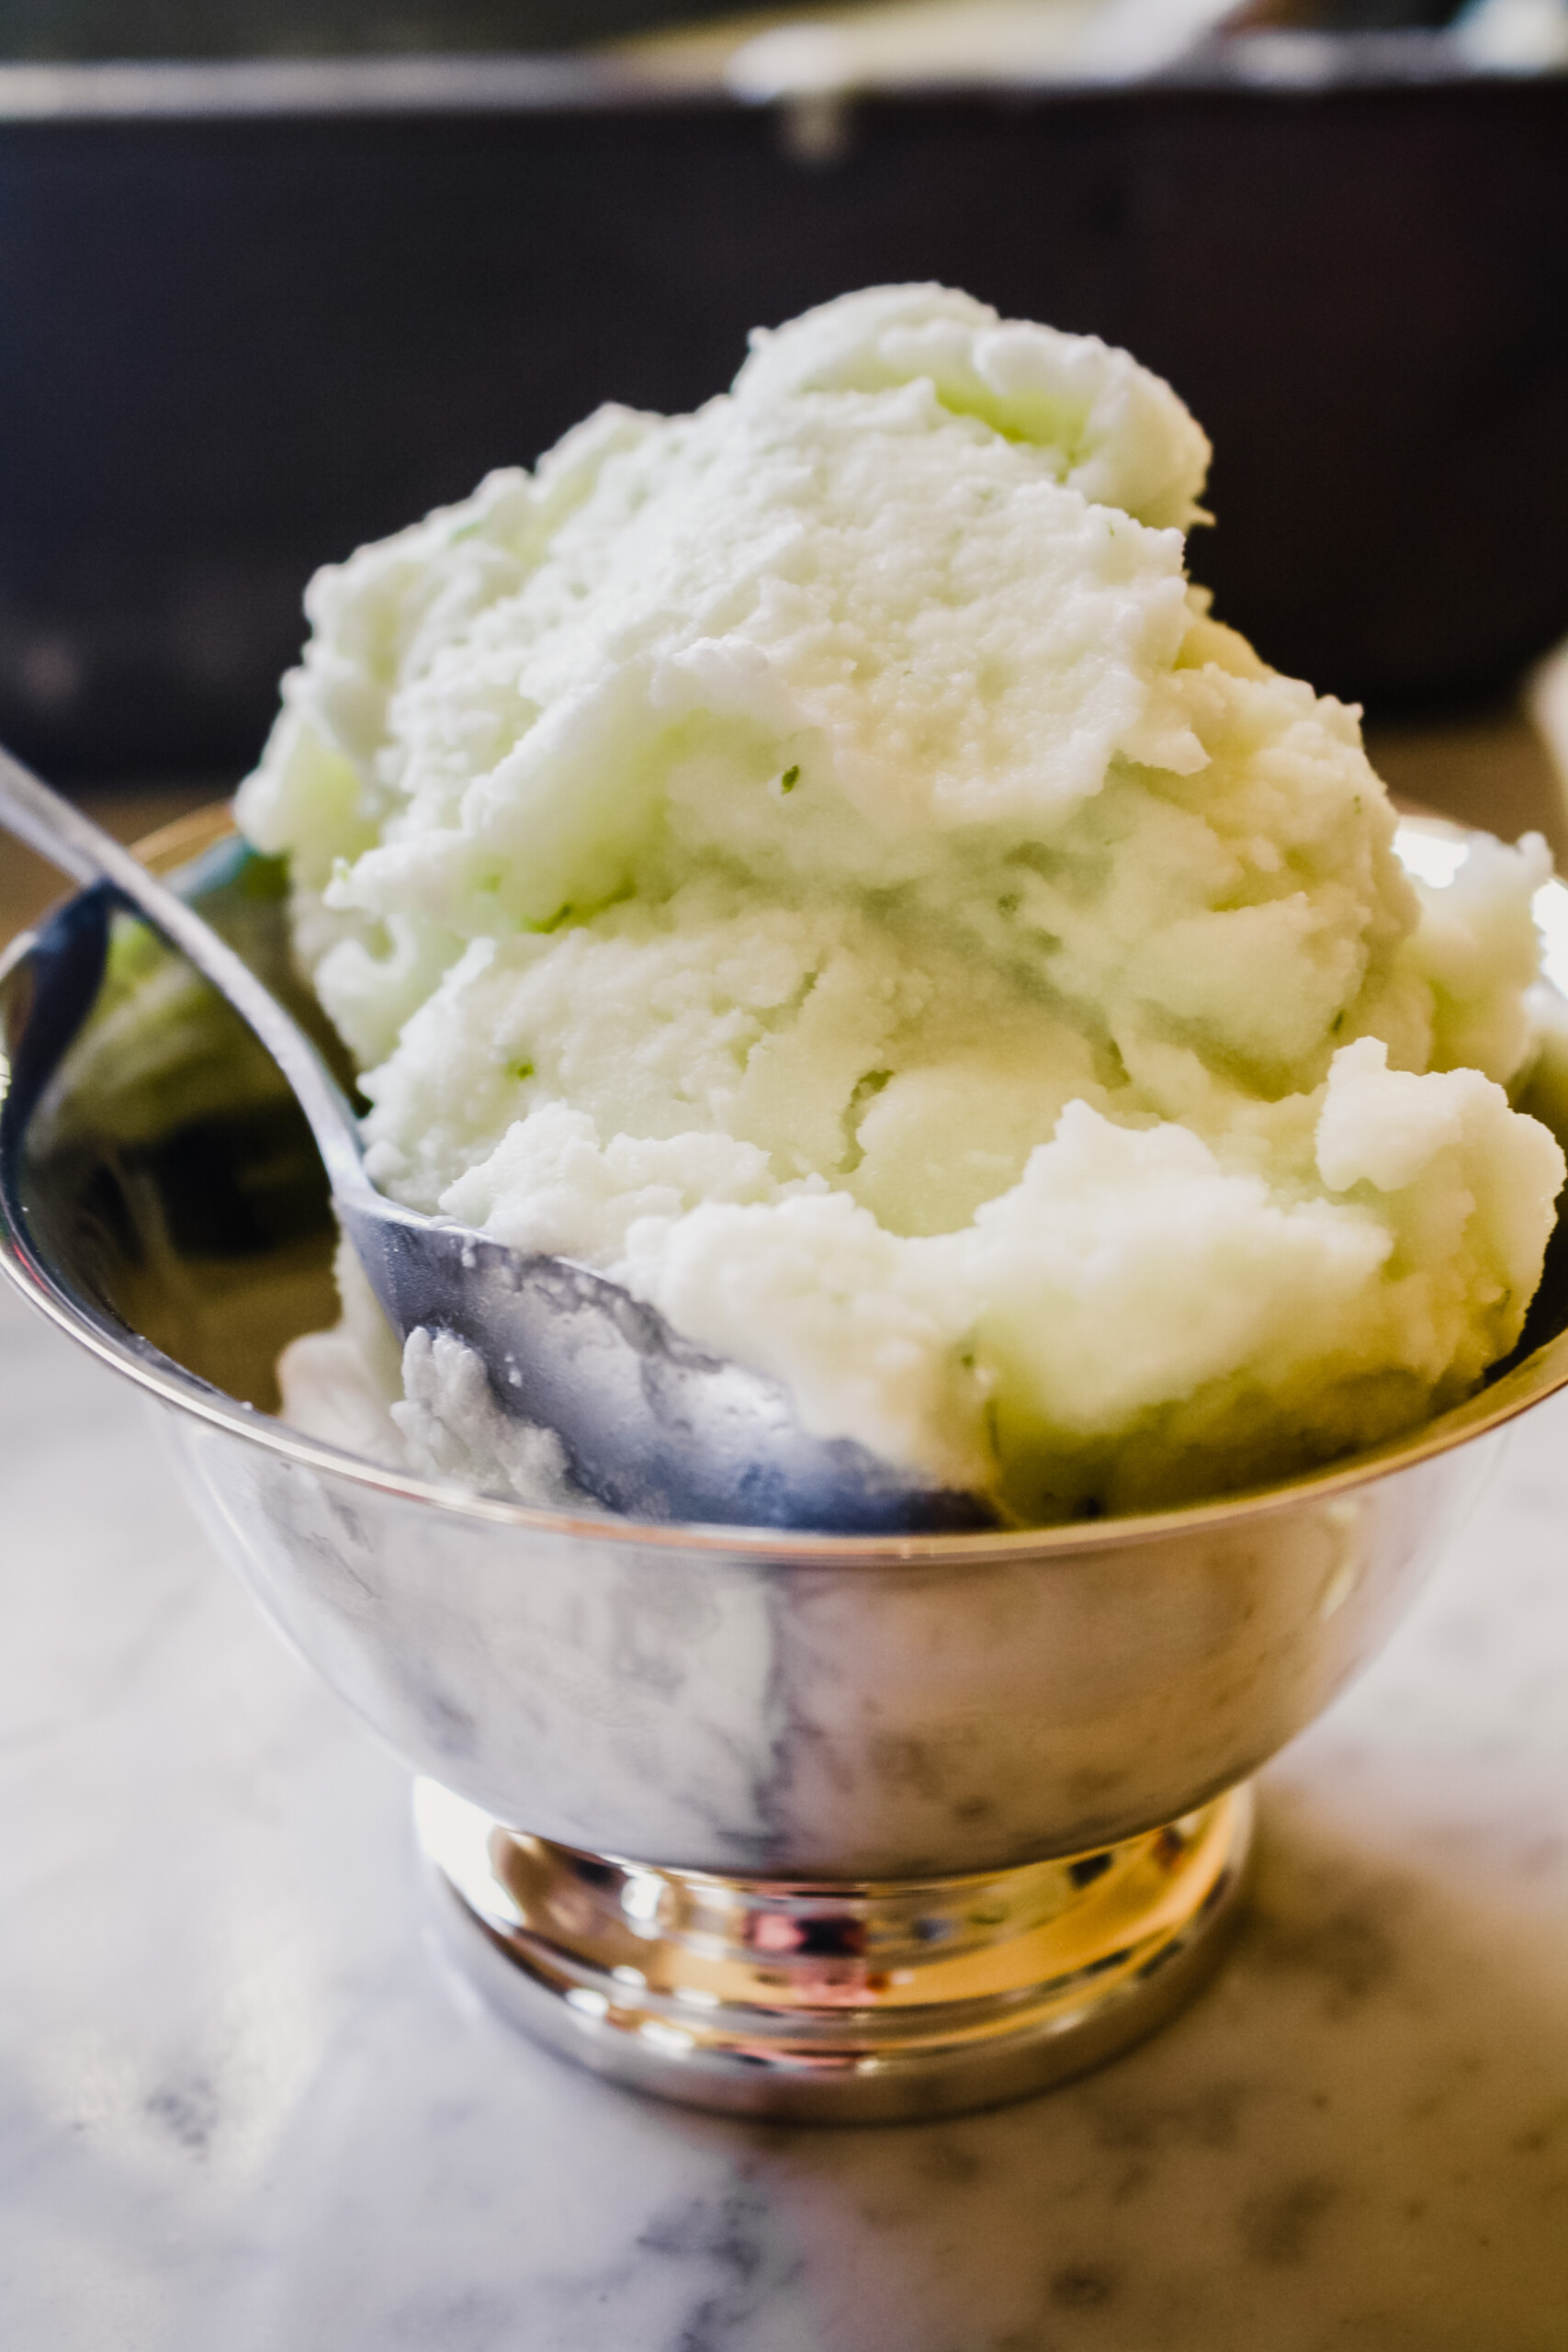 Photograph of sorbet piled high in a silver bowl.